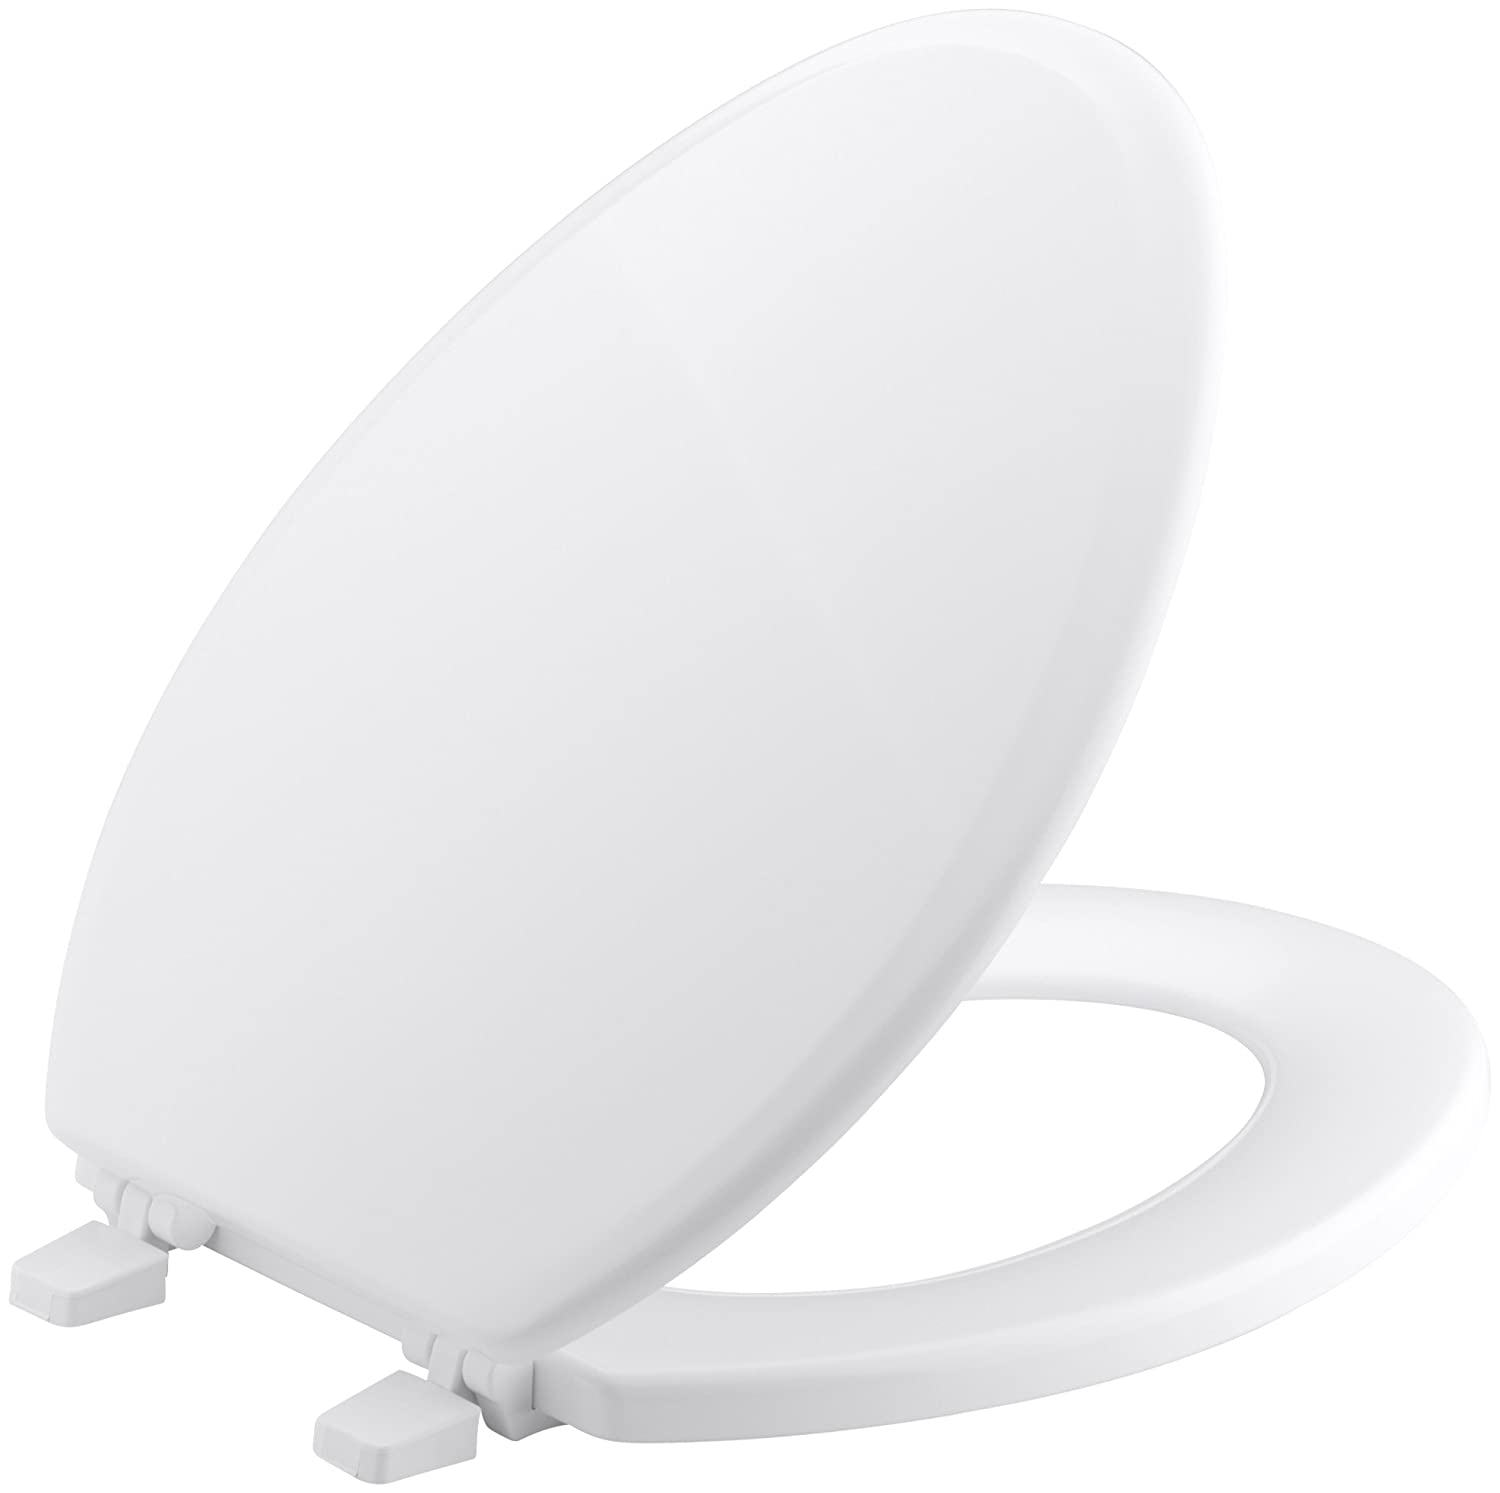 KOHLER K-4694-0 Ridgewood Molded-Wood with Color-Matched Plastic Hinges Elongated Toilet Seat, White